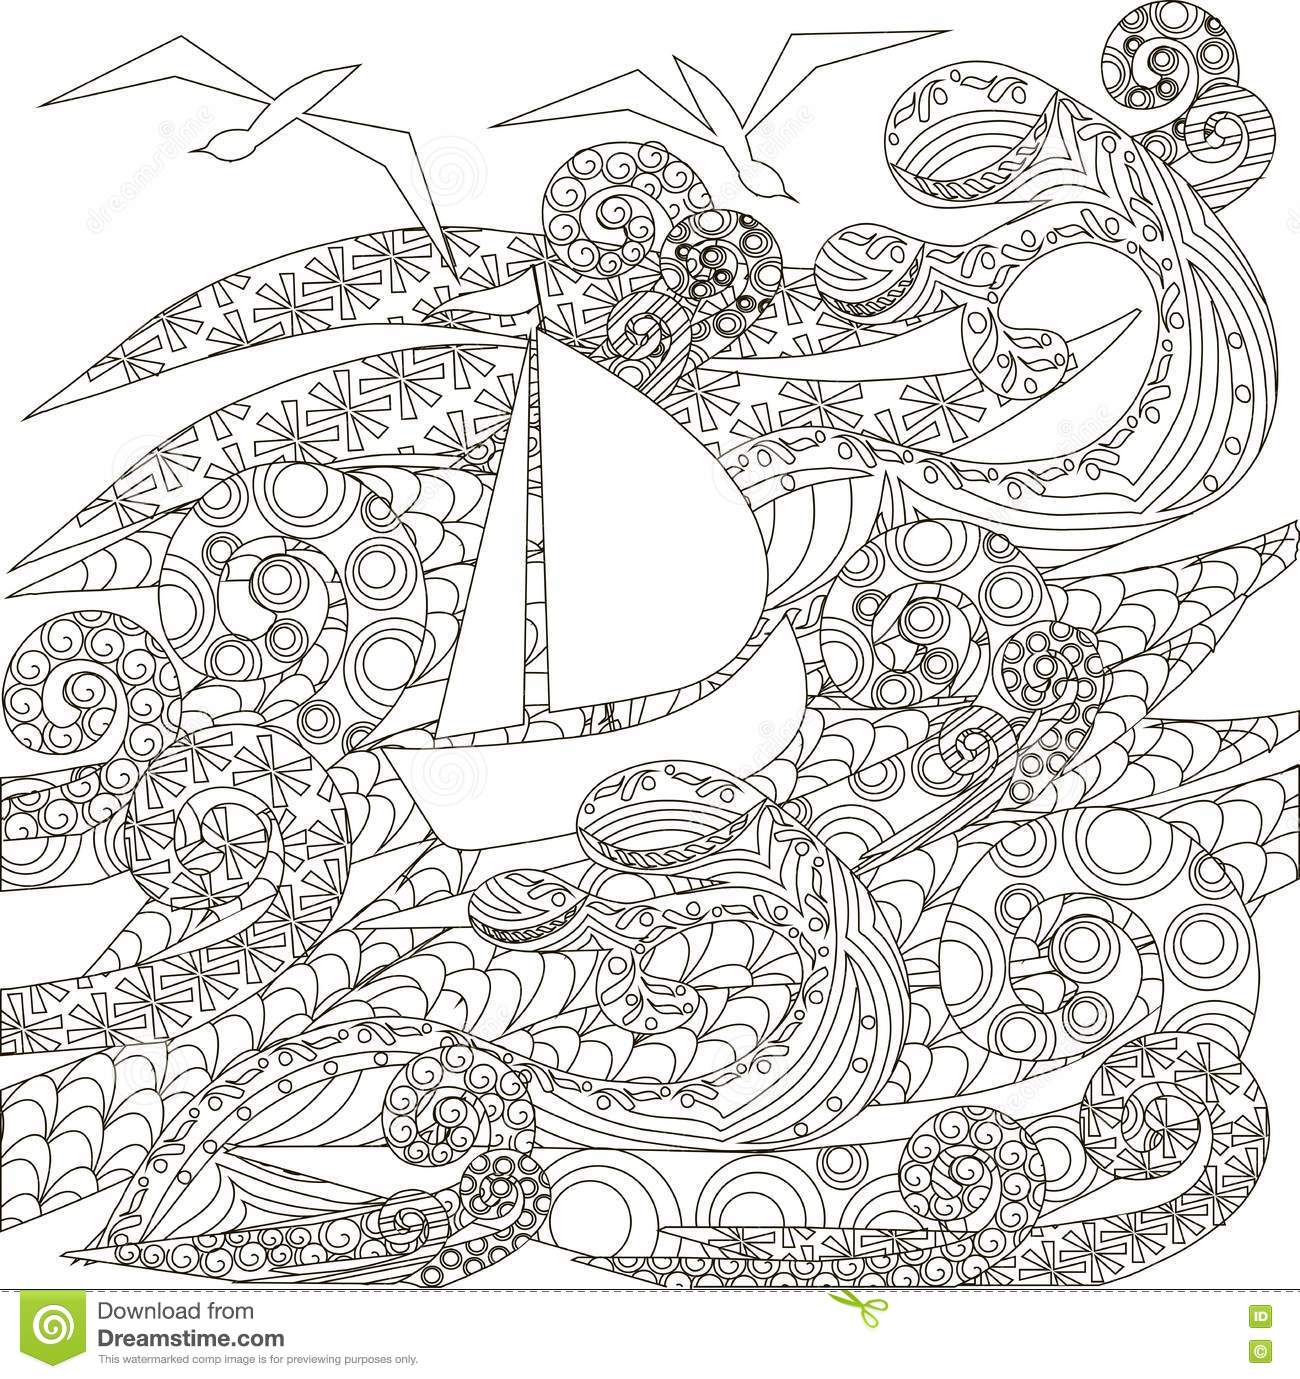 ocean storm coloring pages - photo#10